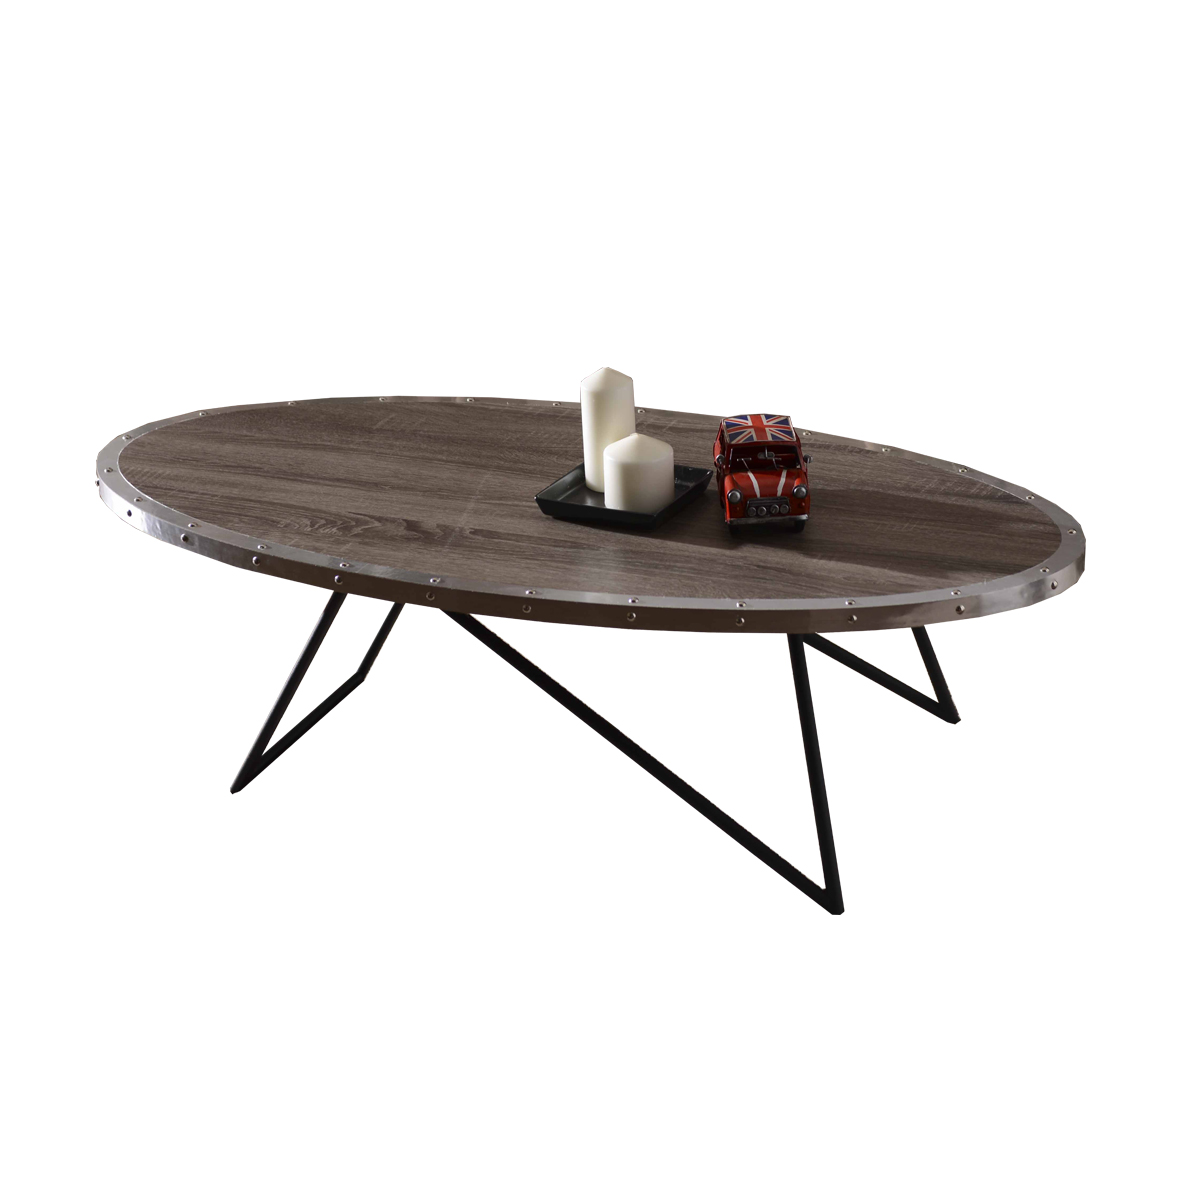 Weathered White Color Oval Shaped Coffee Table